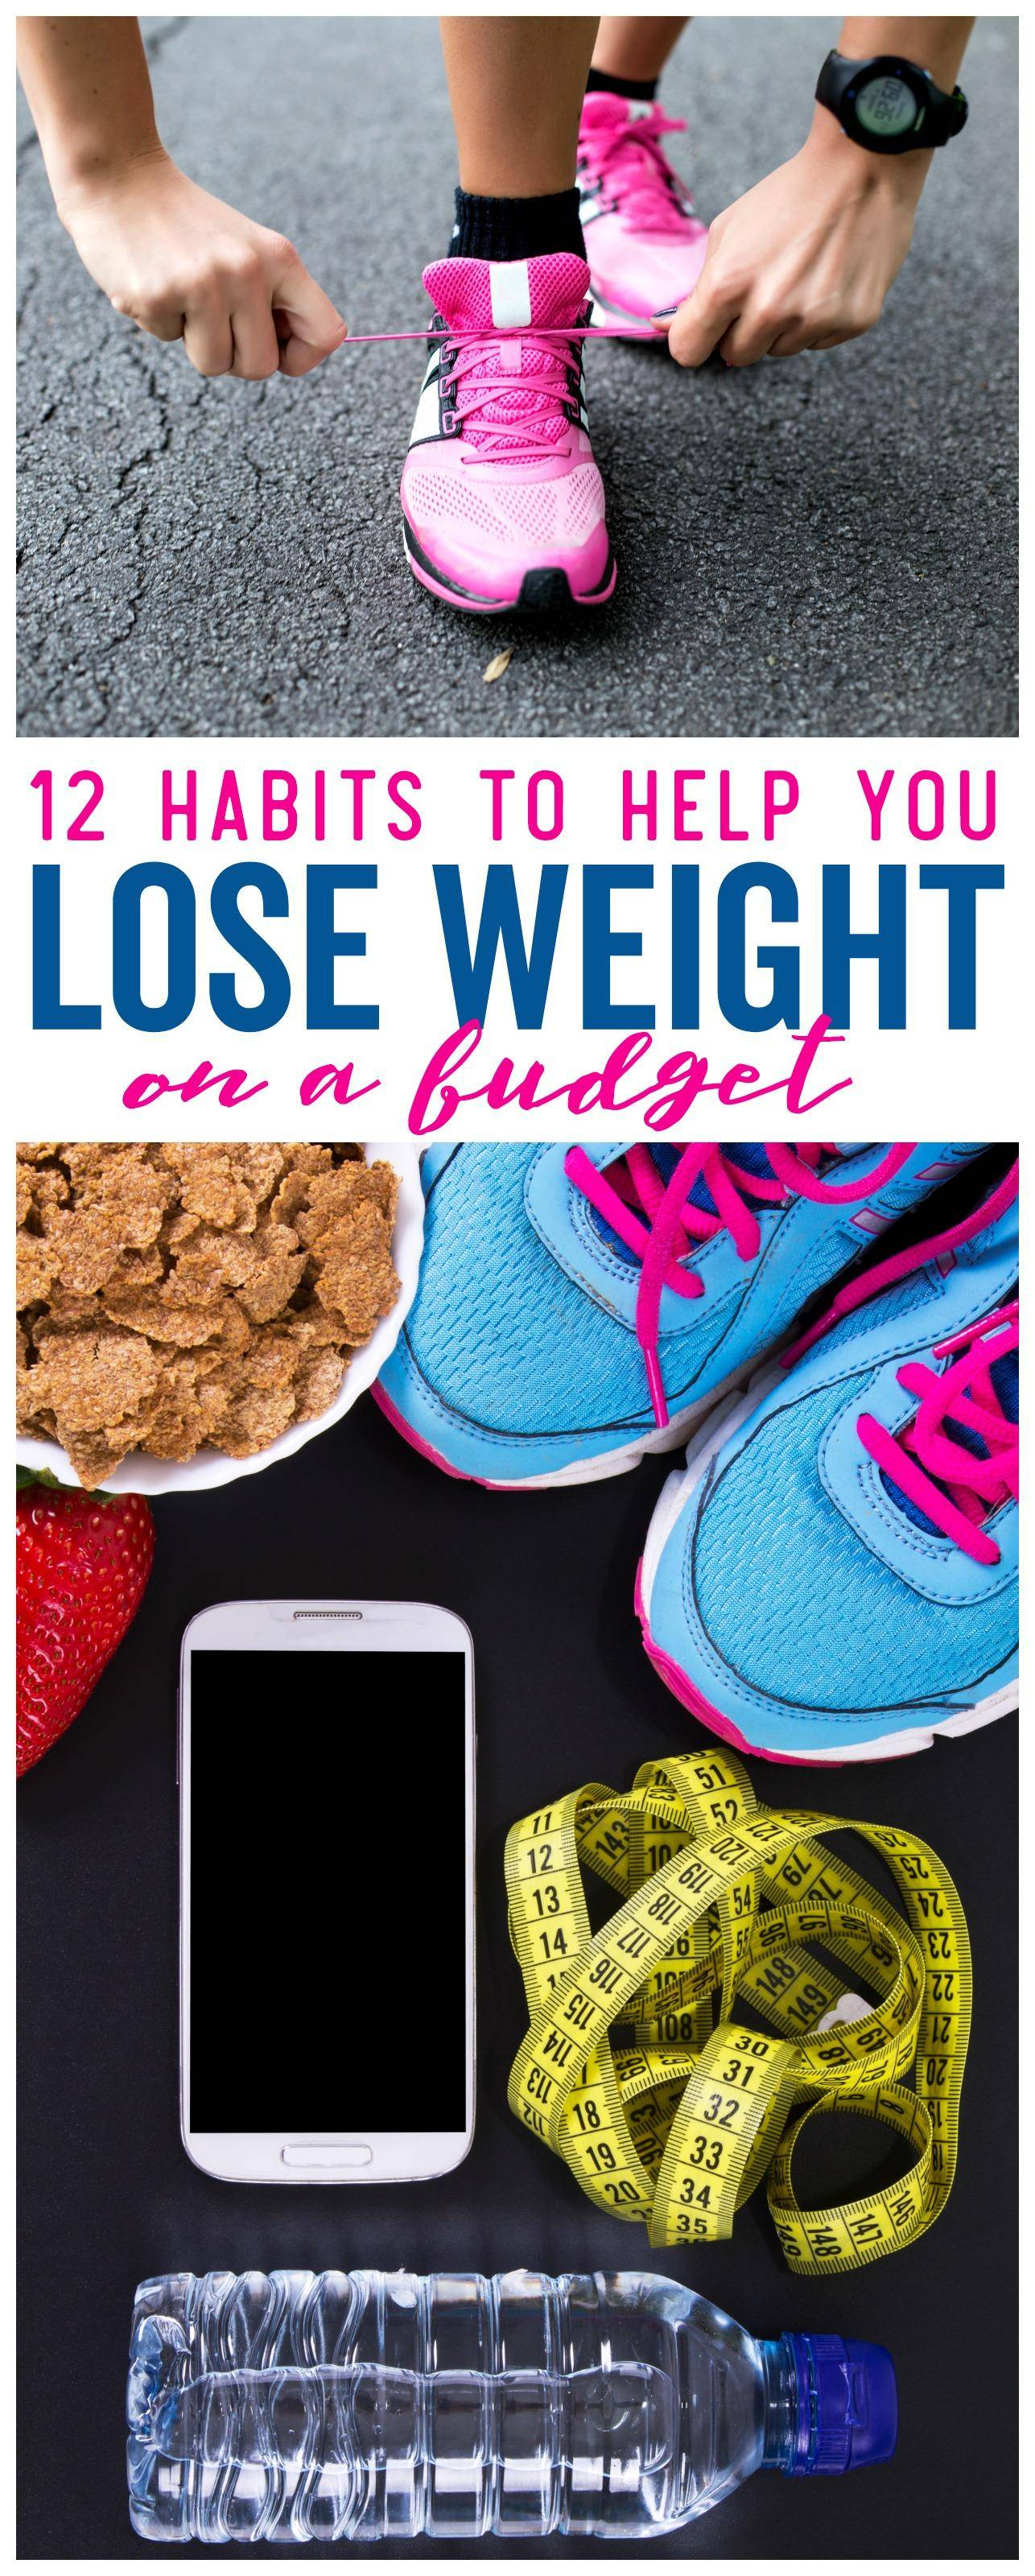 12 Habits to Help You Lose Weight on a Budget, Get In Shape, Eat Less and Look Your Best on a budget.